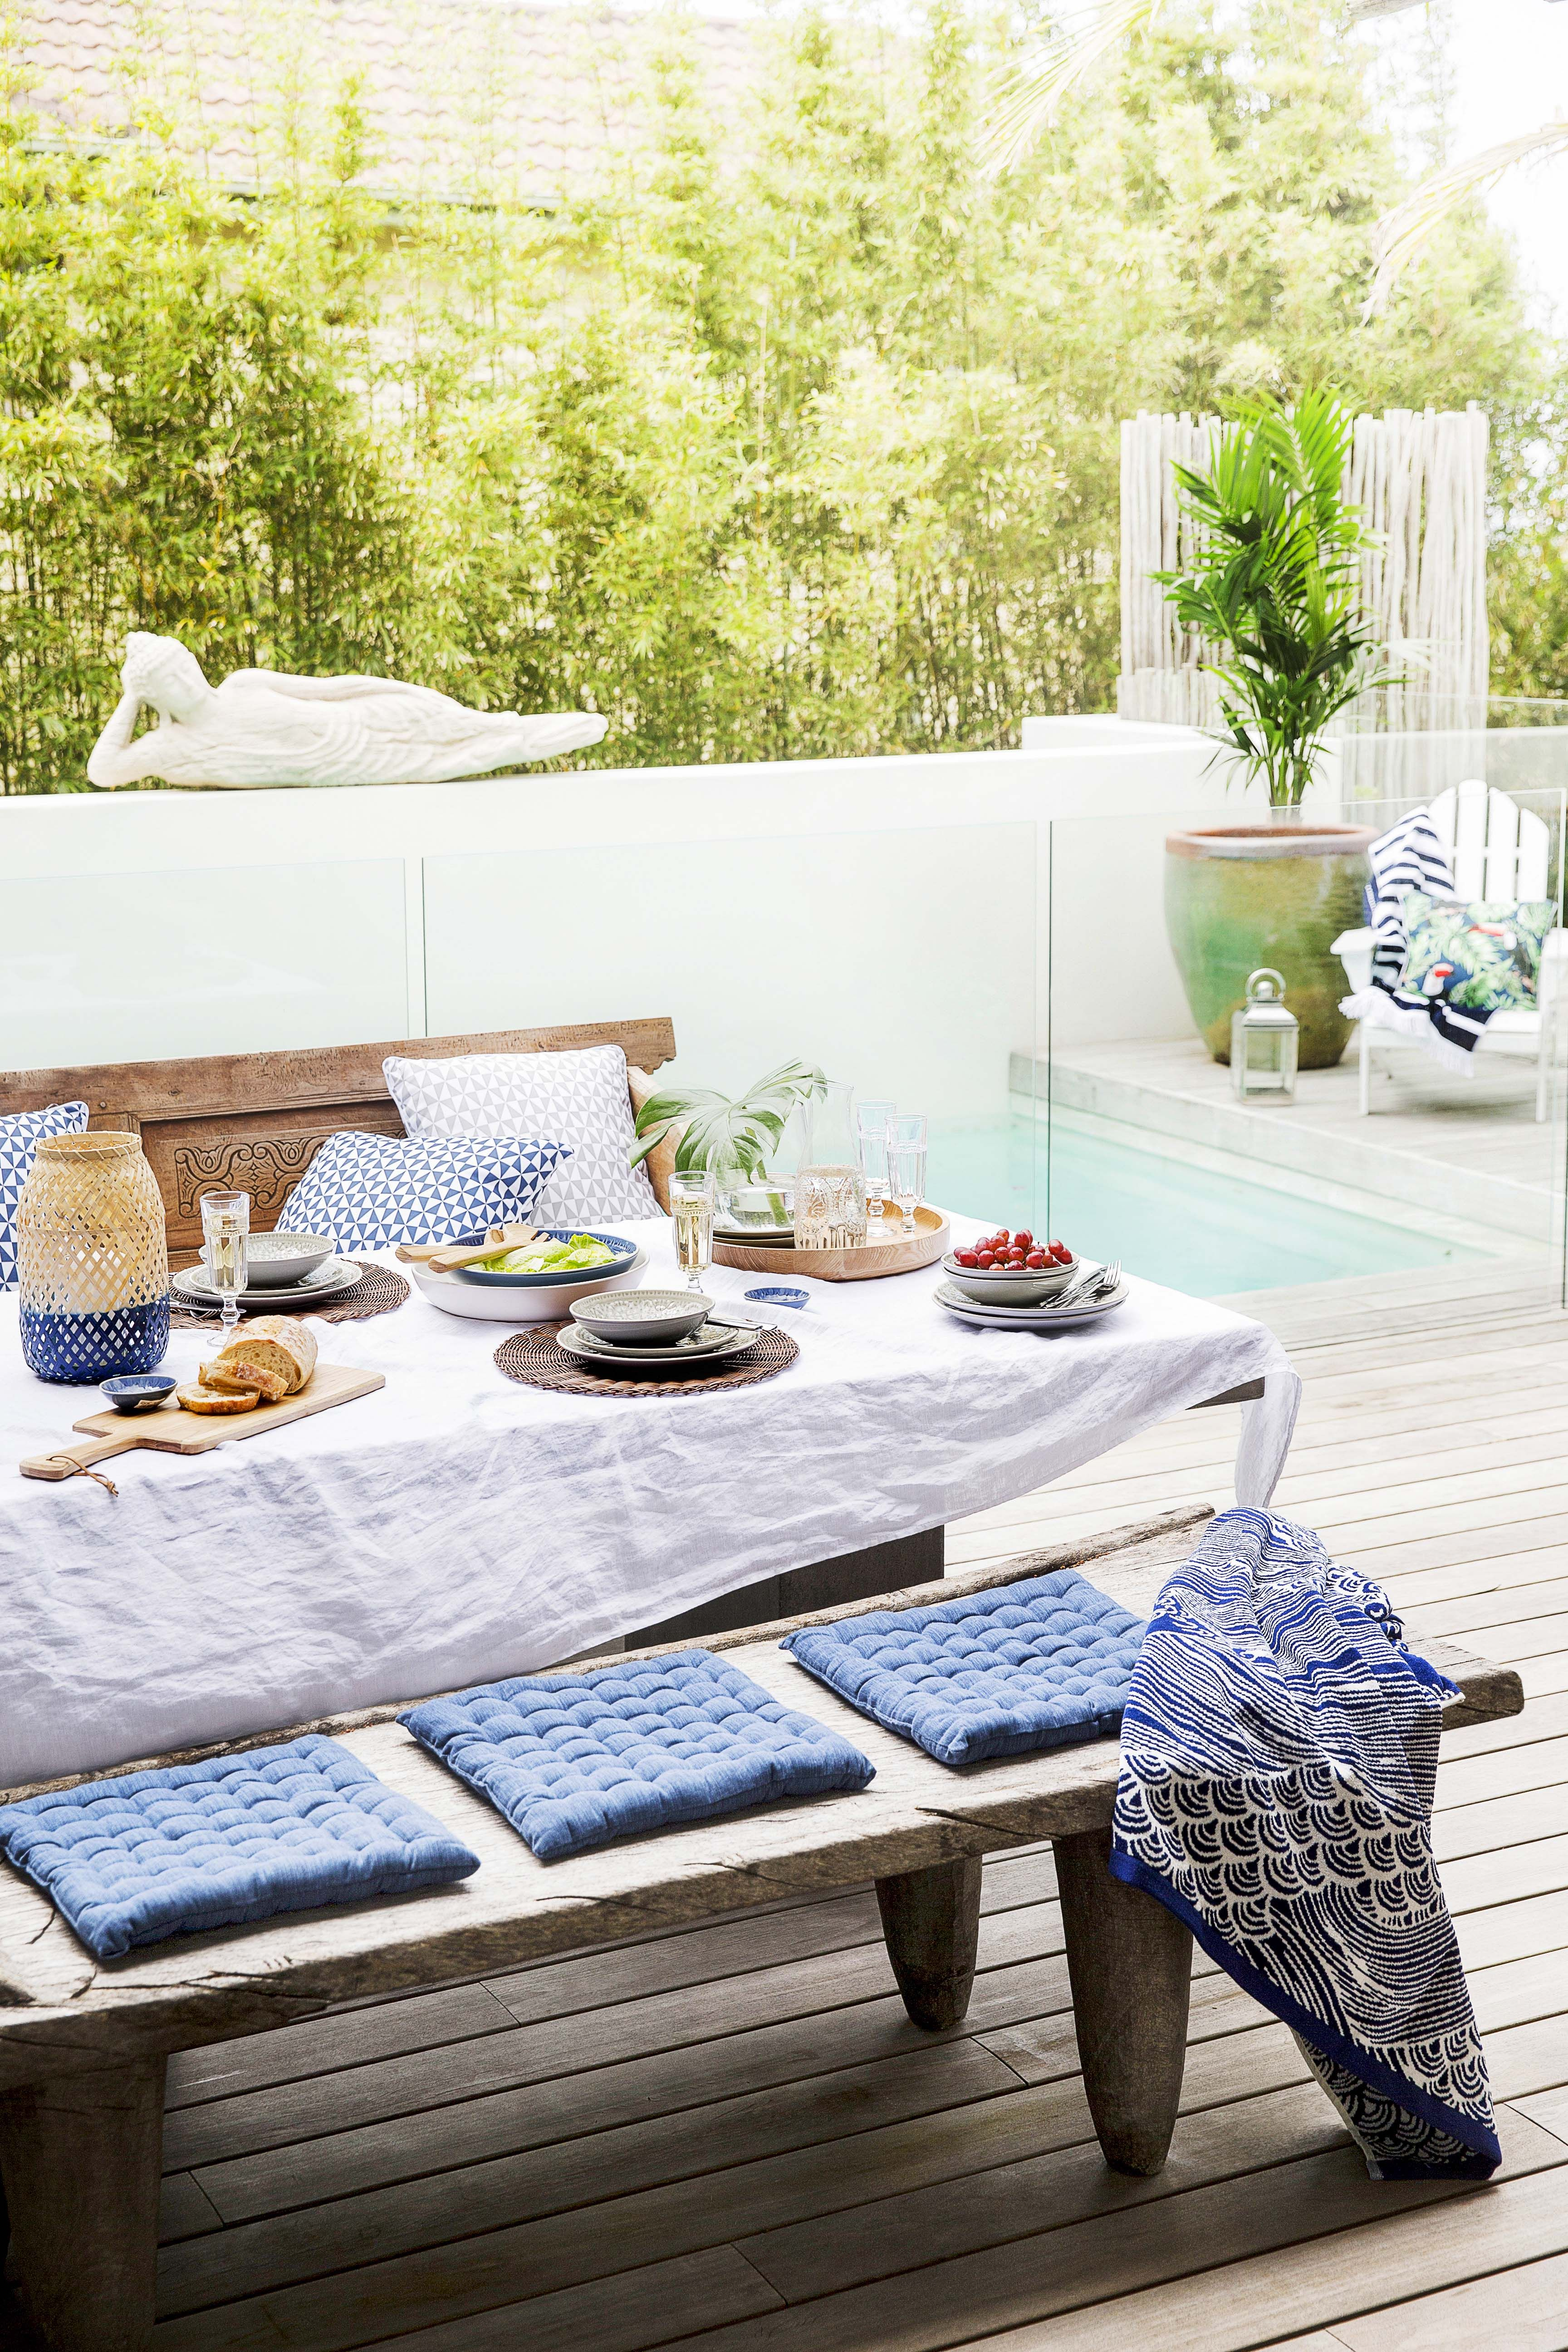 Home Beautiful Takes The Style Challenge And Decorates An Entire Outdoor Space From Bed Bath N Table On A B Outdoor Dining Spaces Home Dining Table In Kitchen